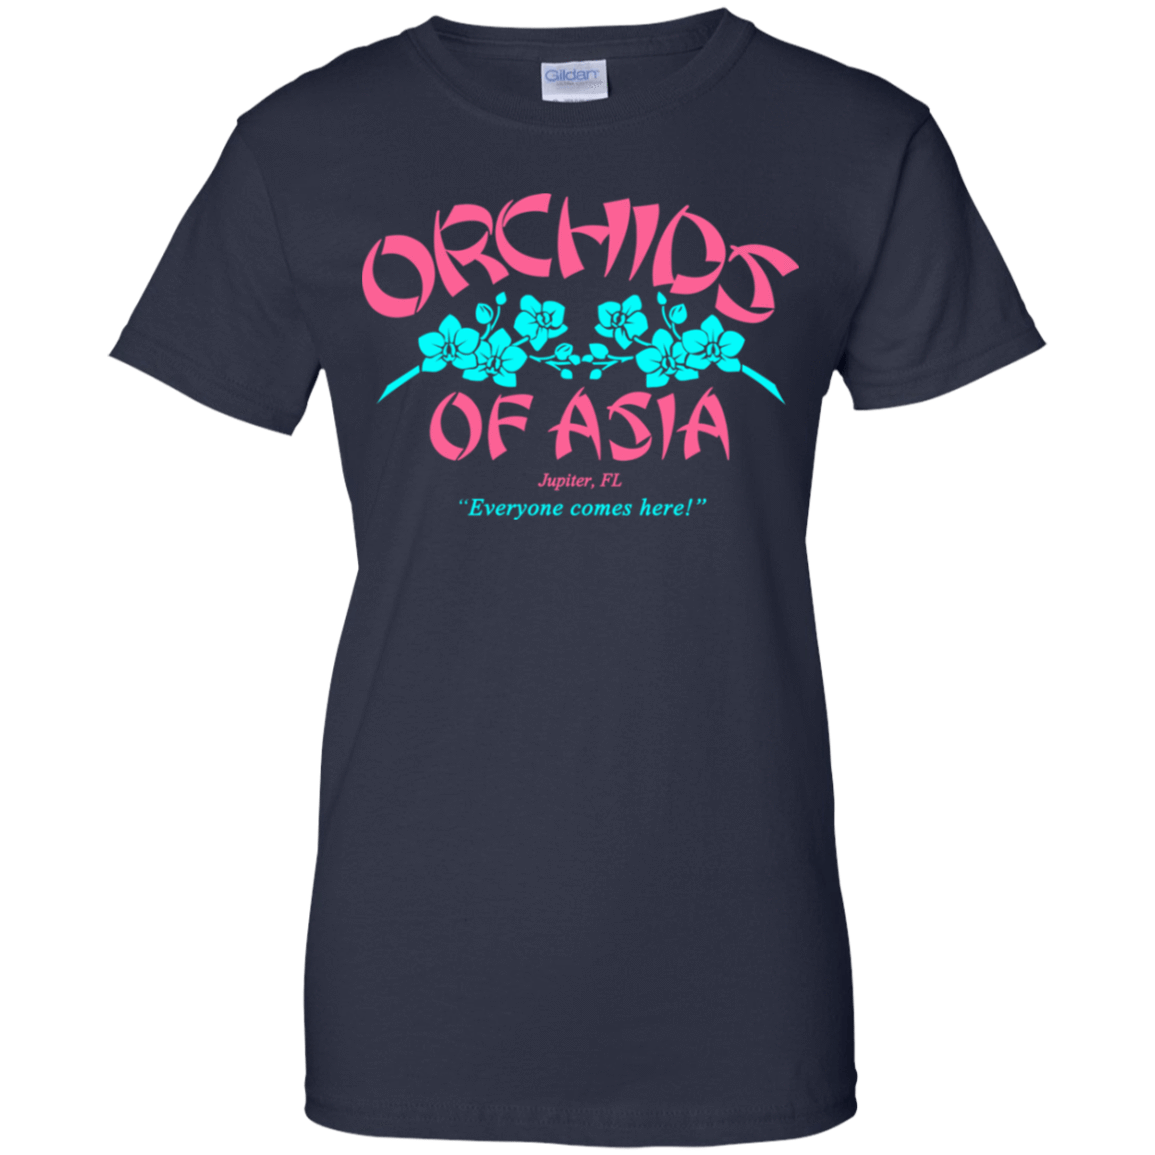 Orchids Of Asia Everyone Comes Here 939-9259-72325196-44765 - Tee Ript